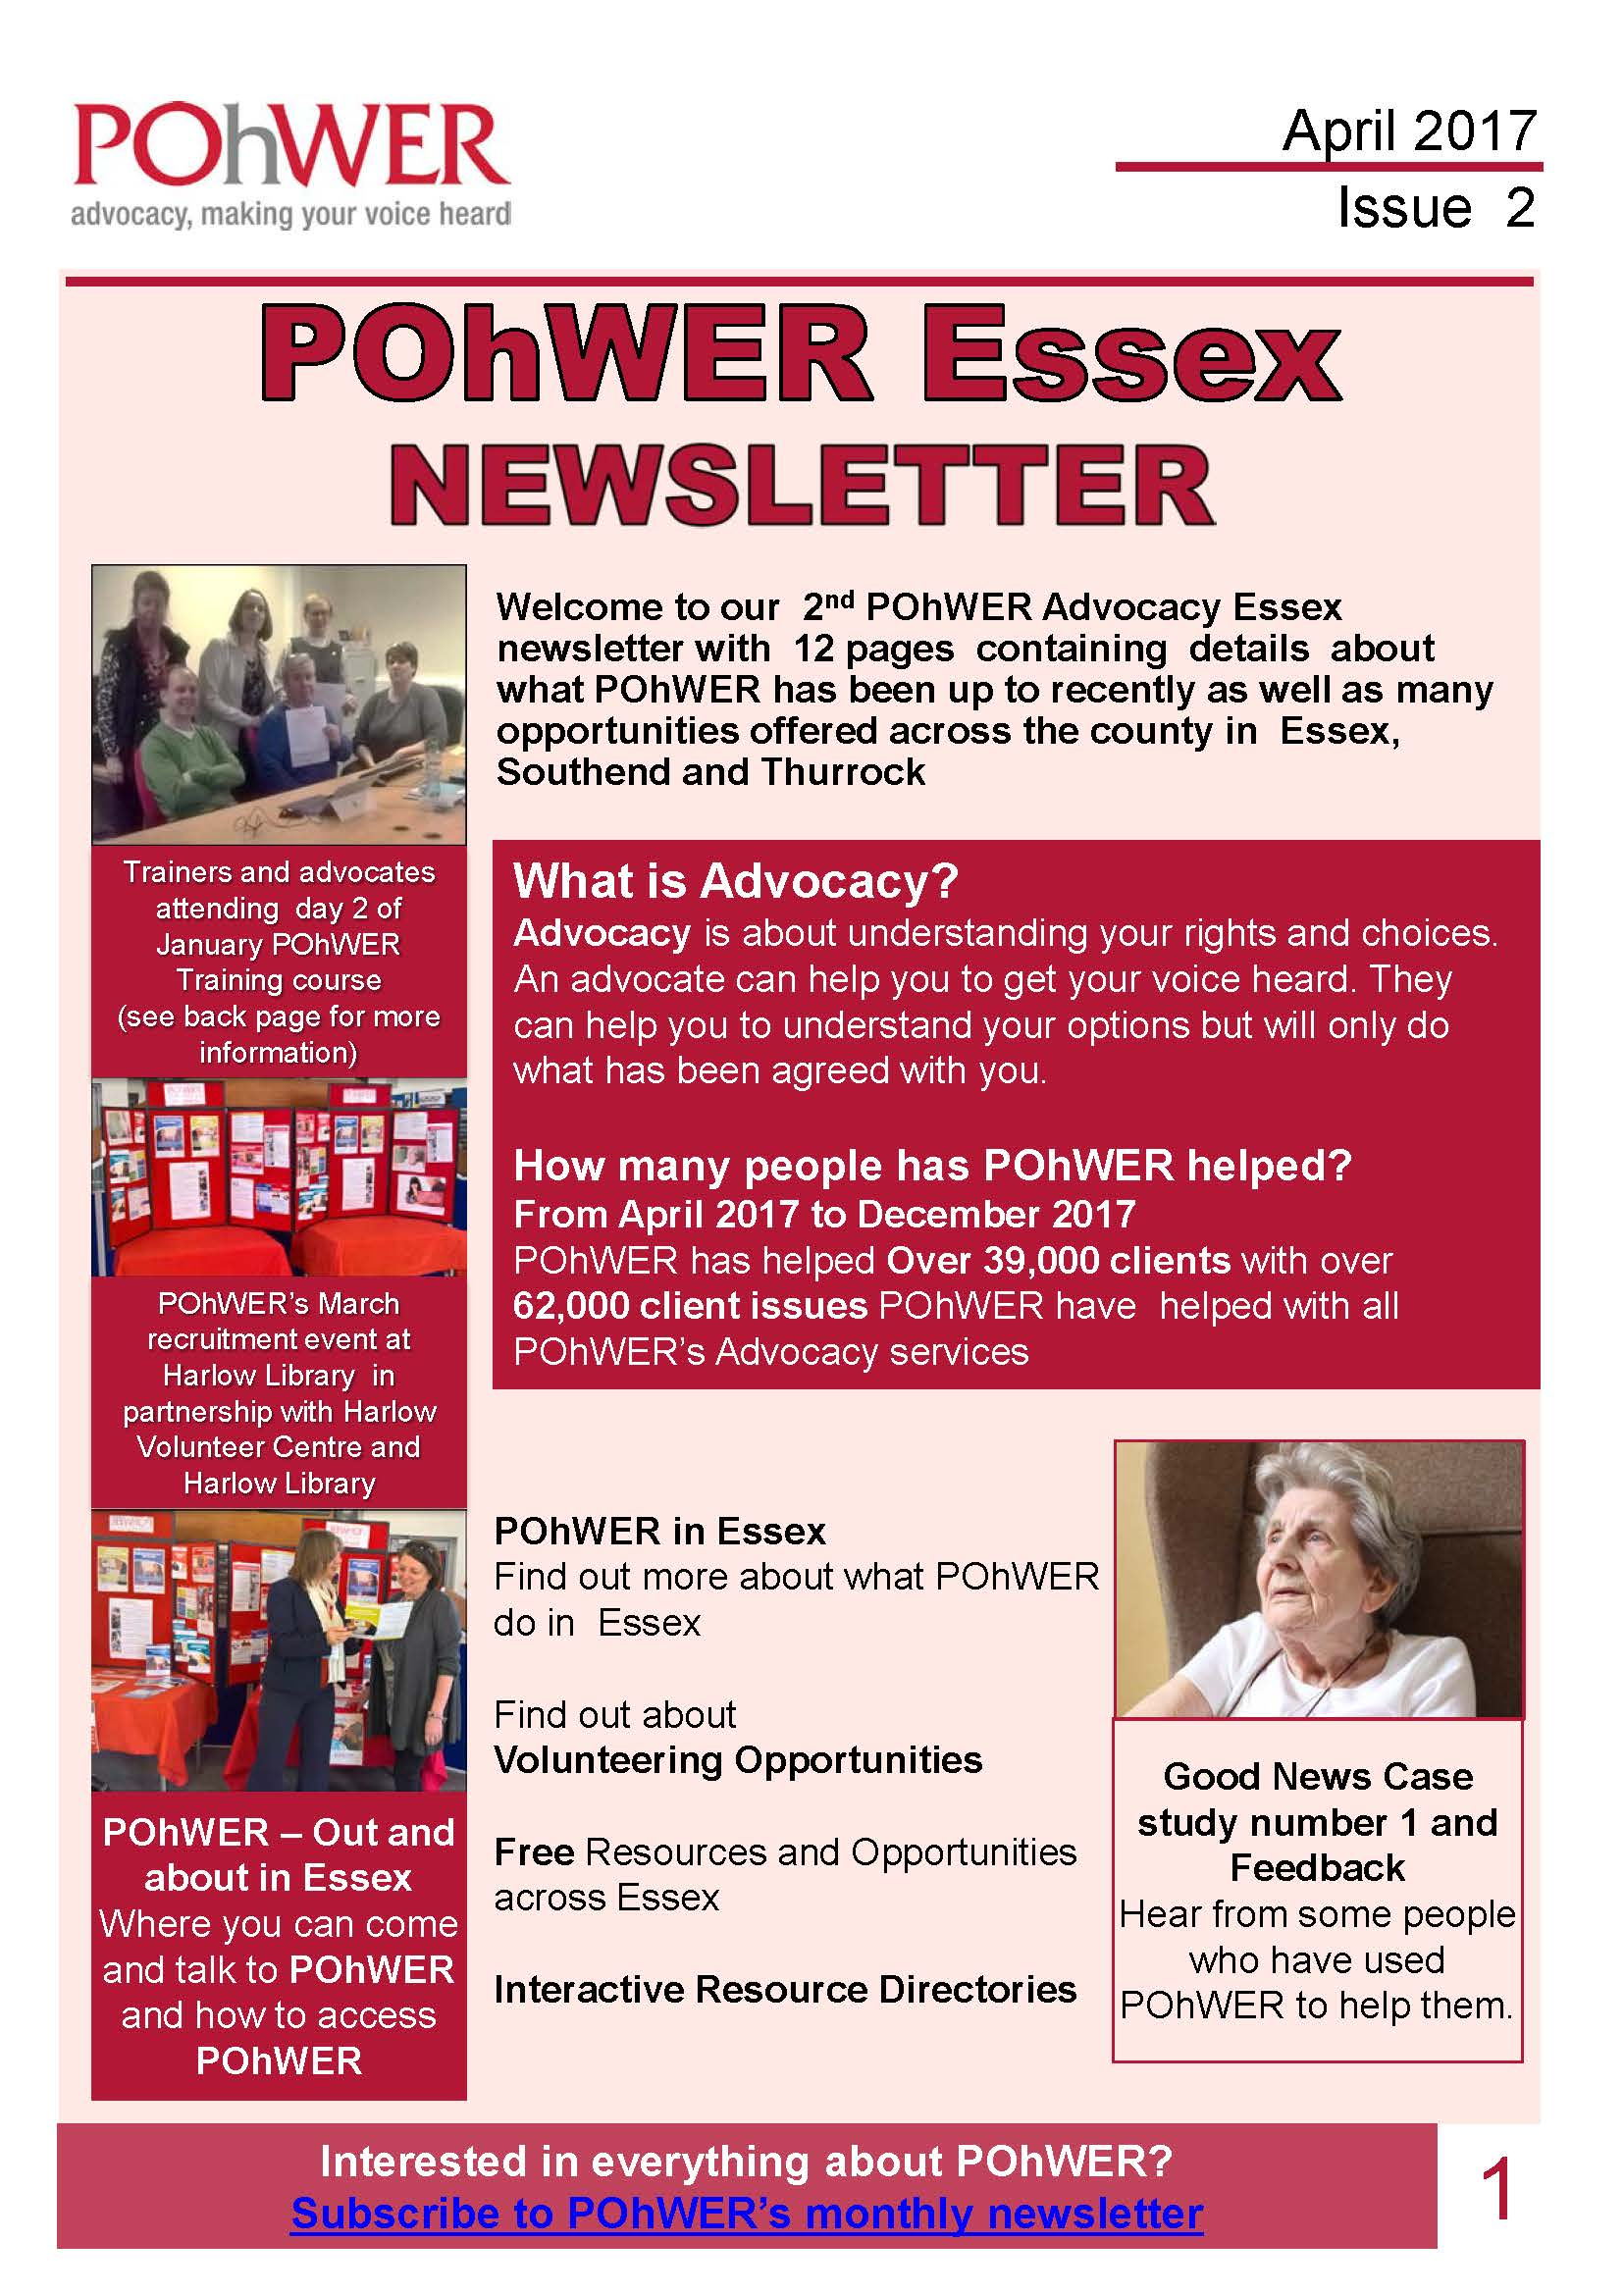 Essex Newsletter issue 2